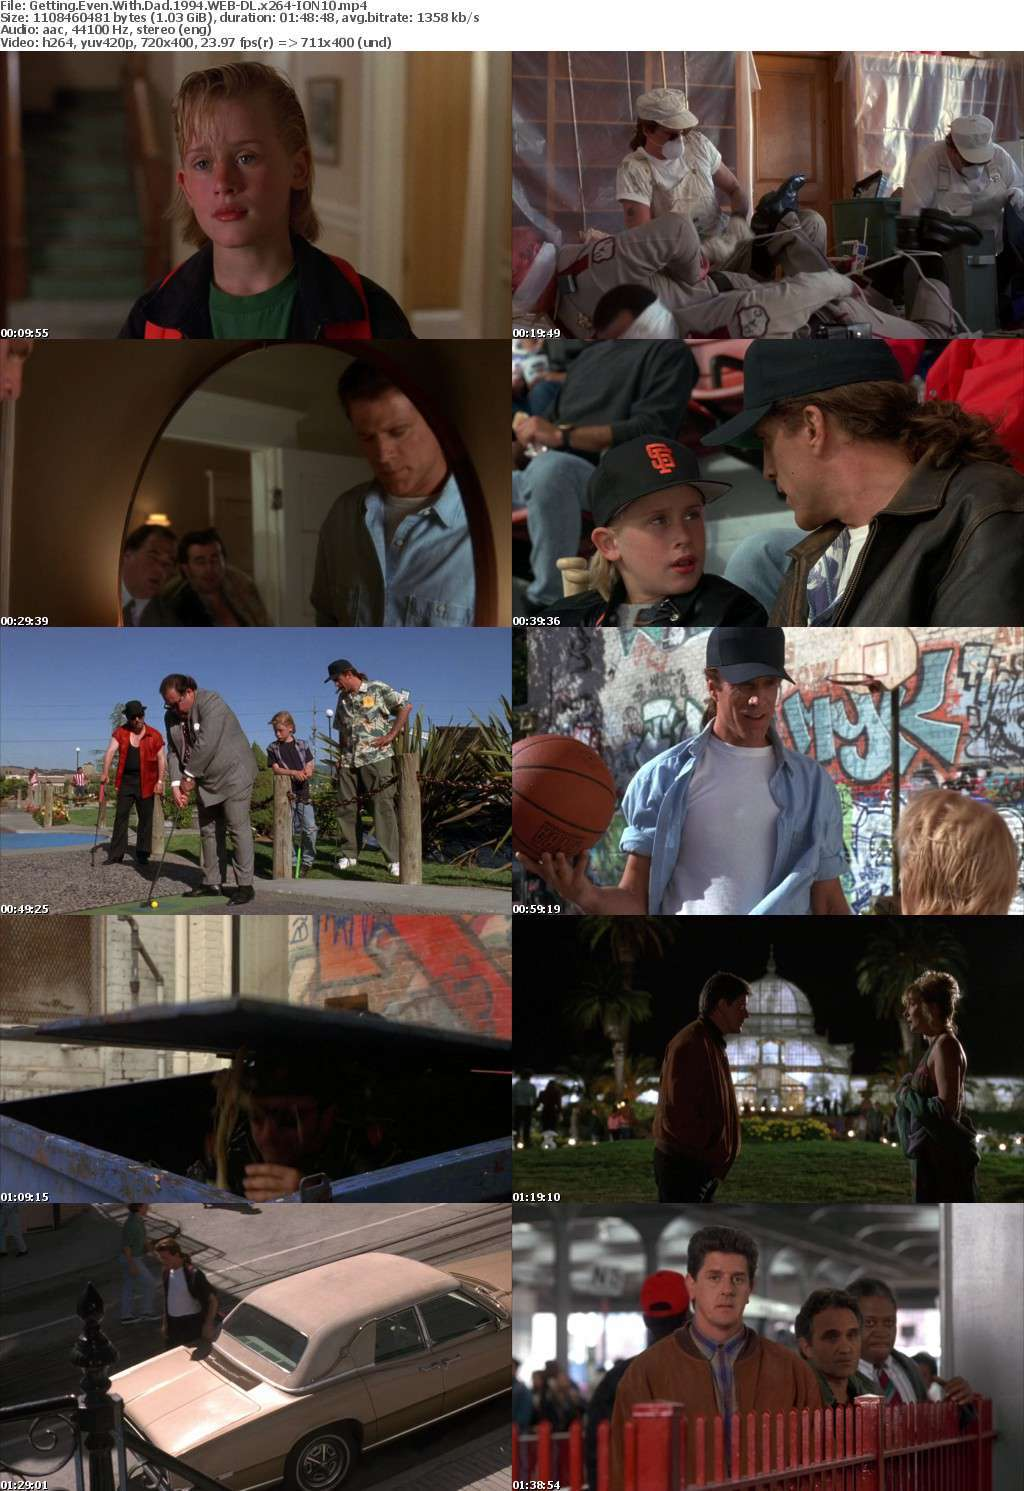 Getting Even With Dad 1994 WEB-DL x264-ION10